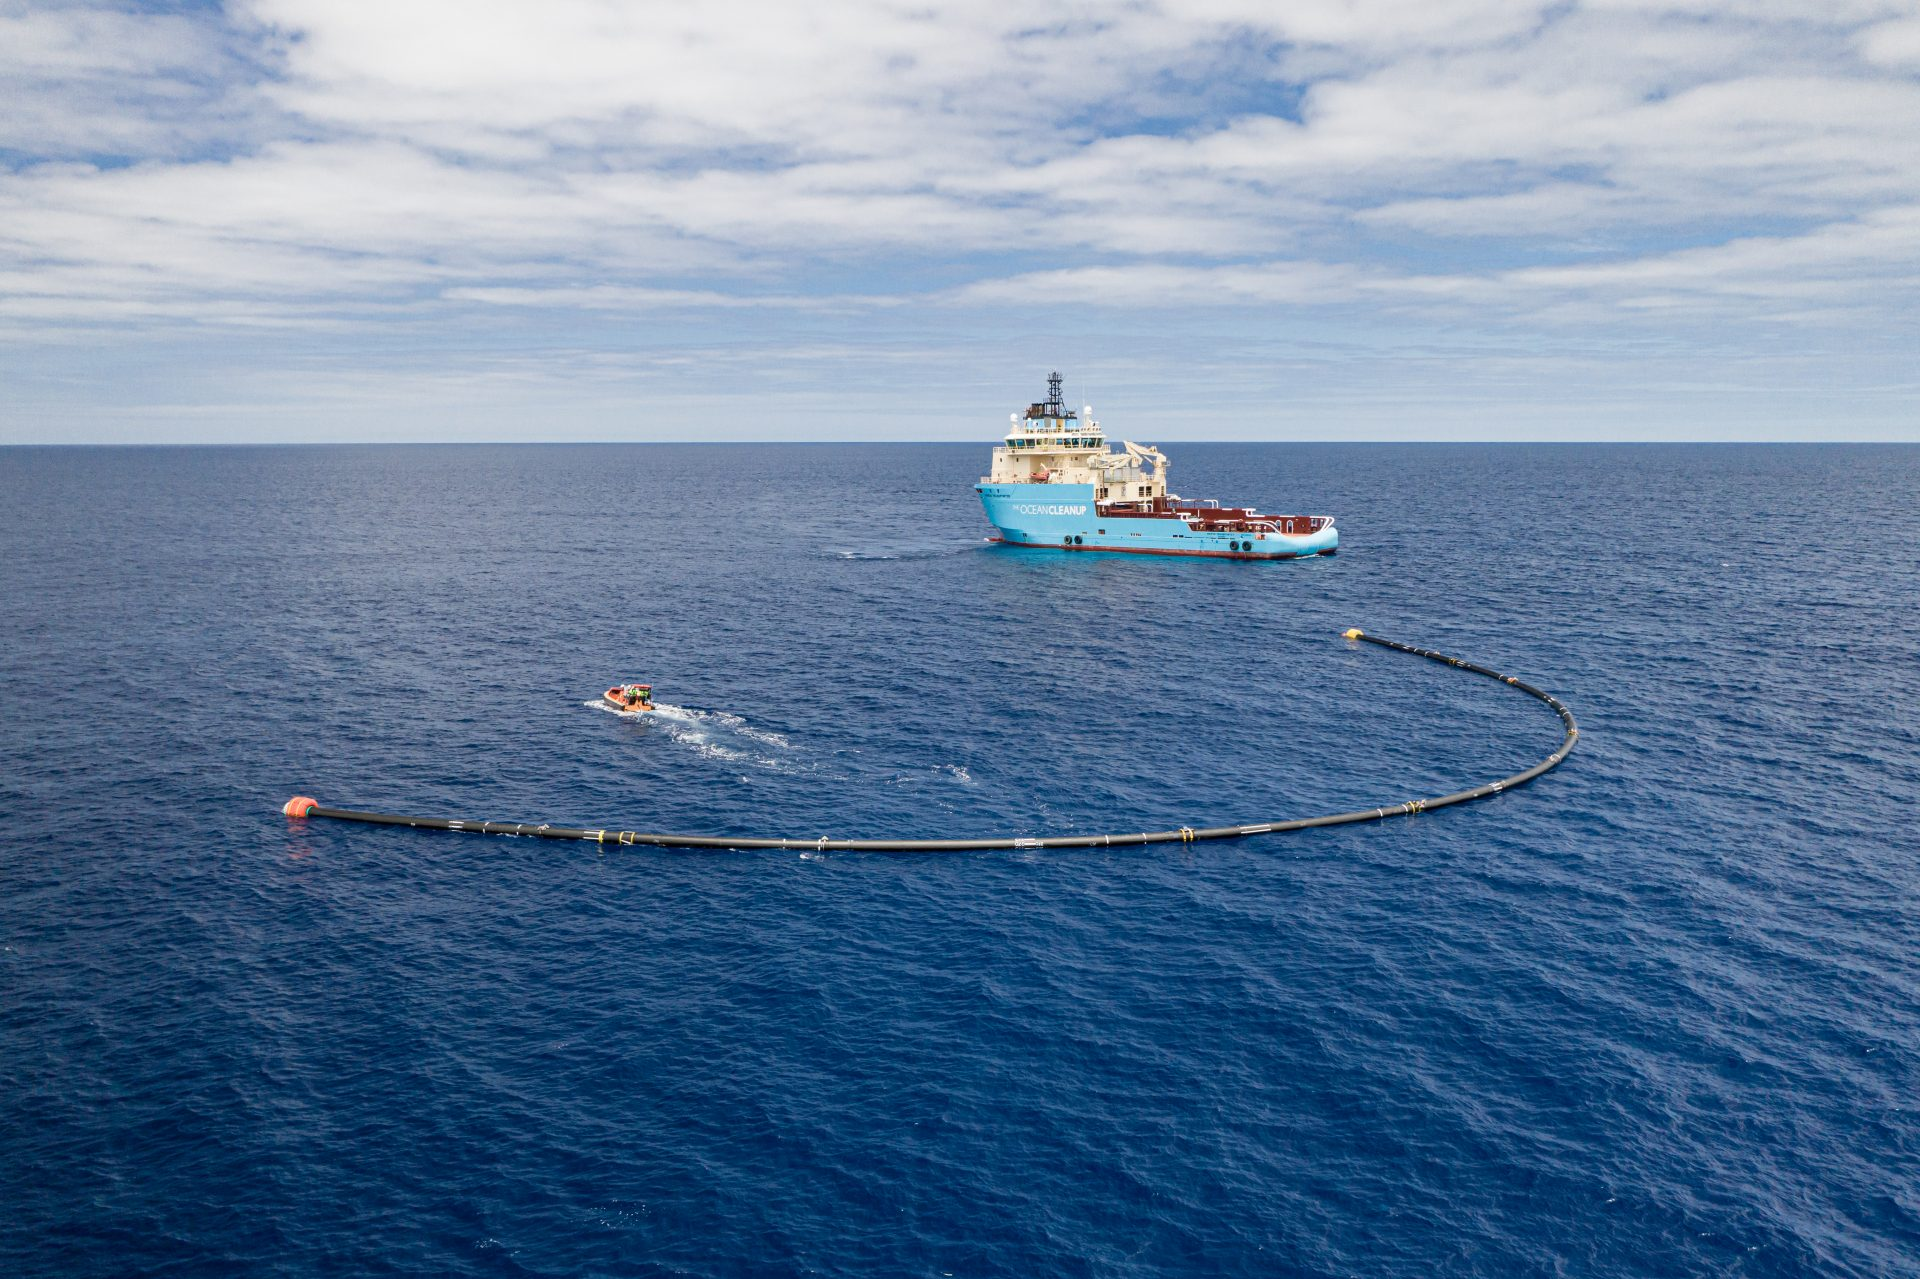 System 001/B deployed in the Great Pacific Garbage Patch. Courtesy of The Ocean Cleanup